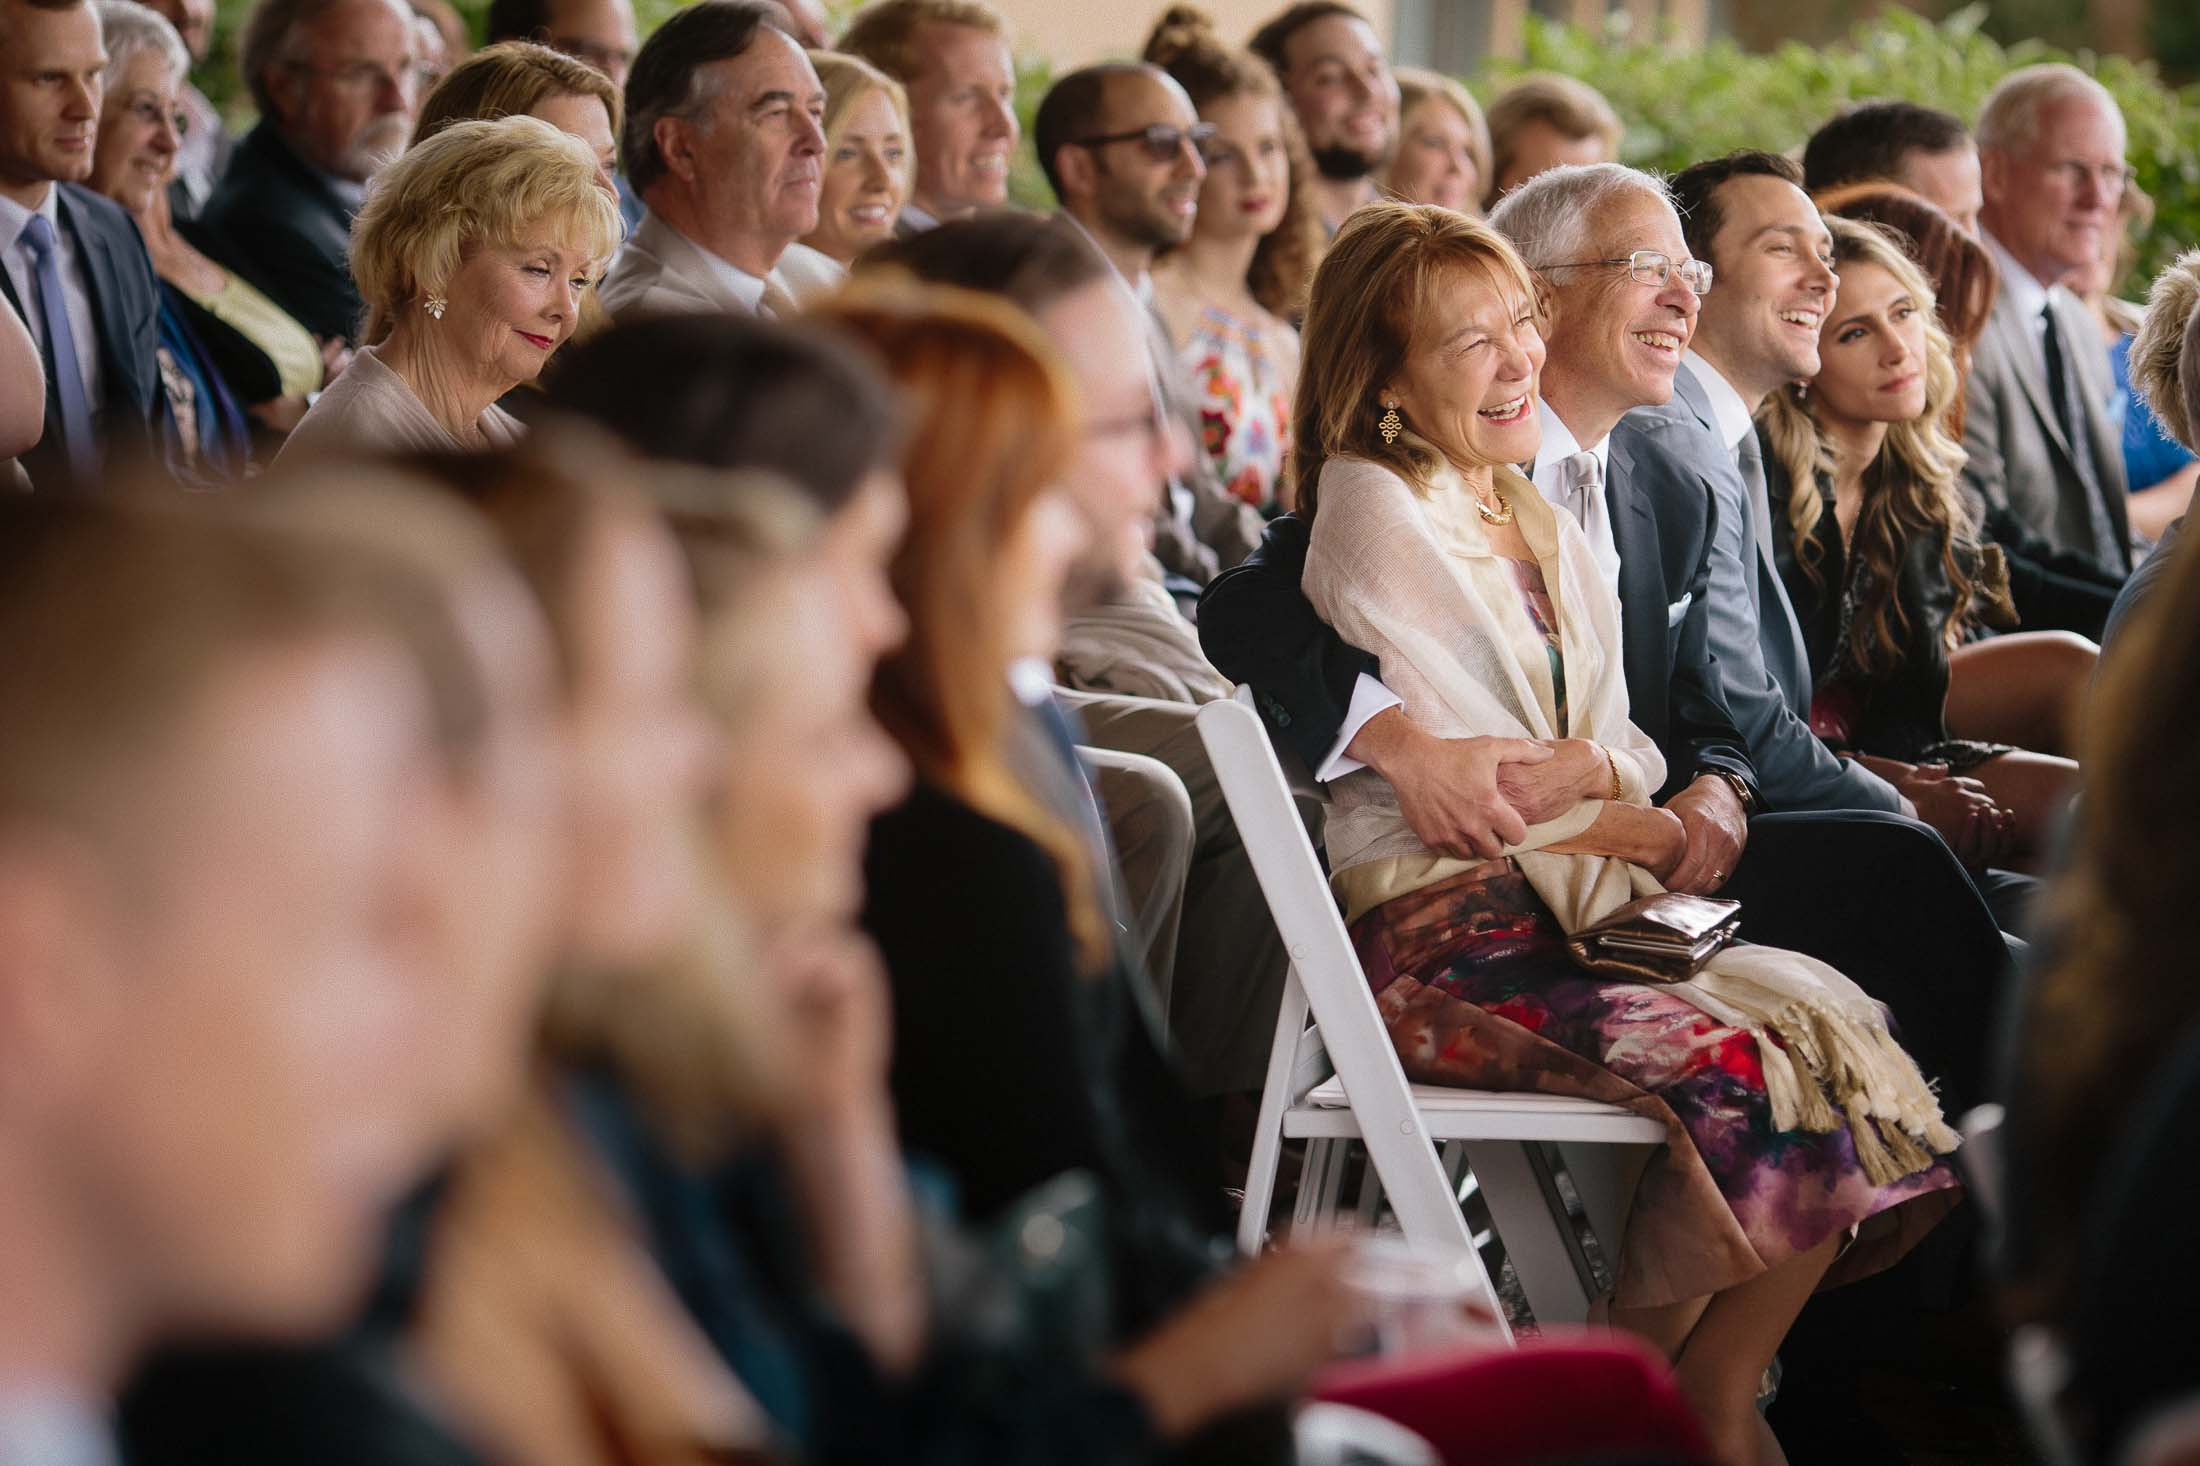 Audience laughs during wedding ceremony.